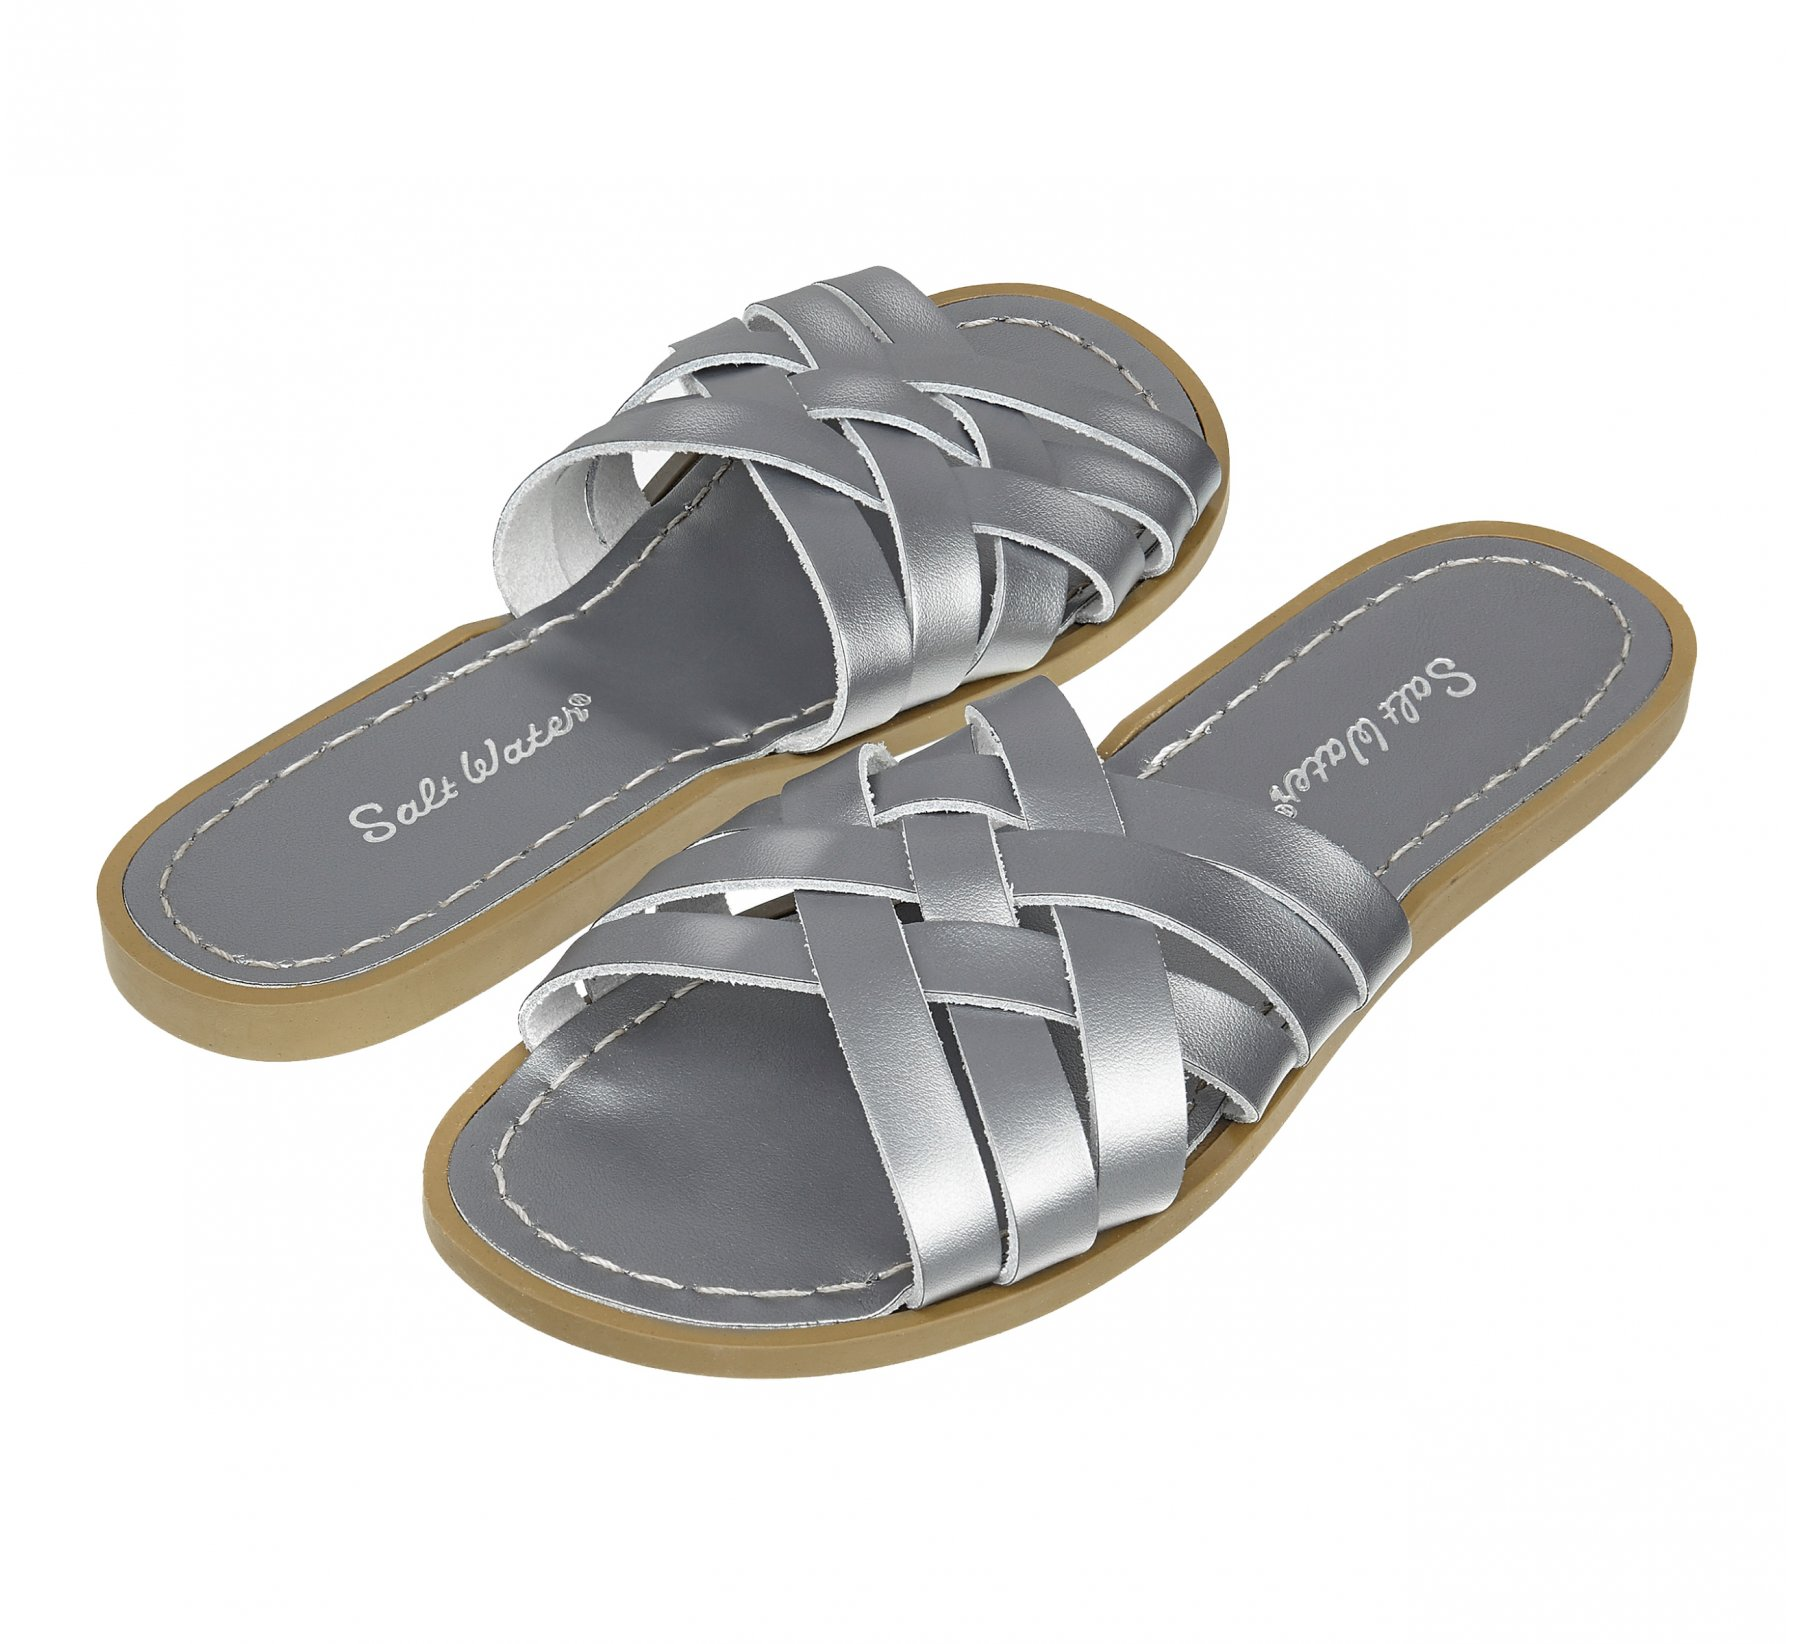 Retro Slide Pewter - Salt Water Sandals